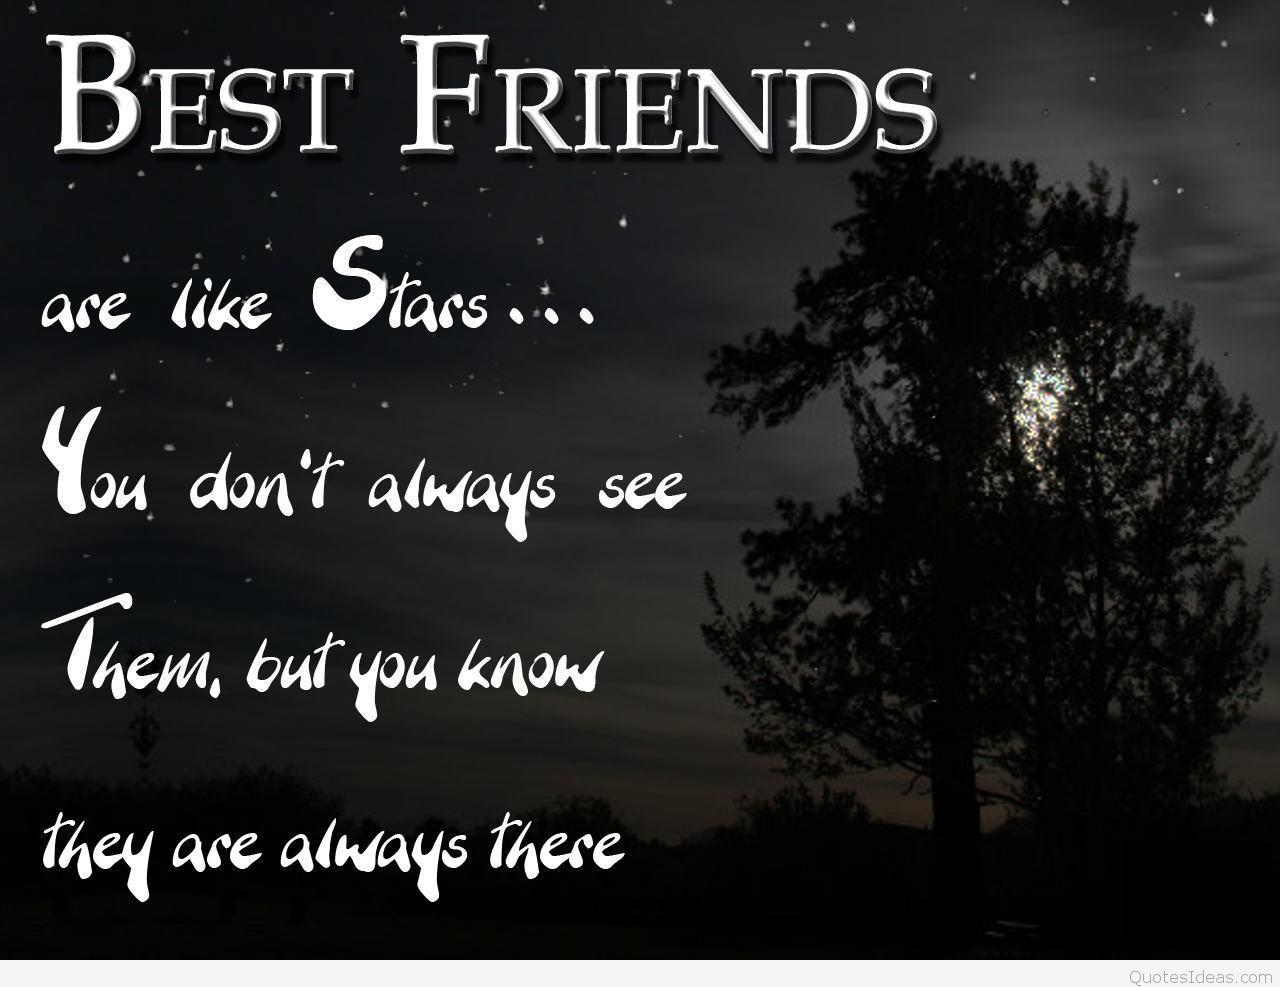 Best Friend Quotes Wallpaper Best Friend Quotes Wallpapers   Wallpaper Cave Best Friend Quotes Wallpaper